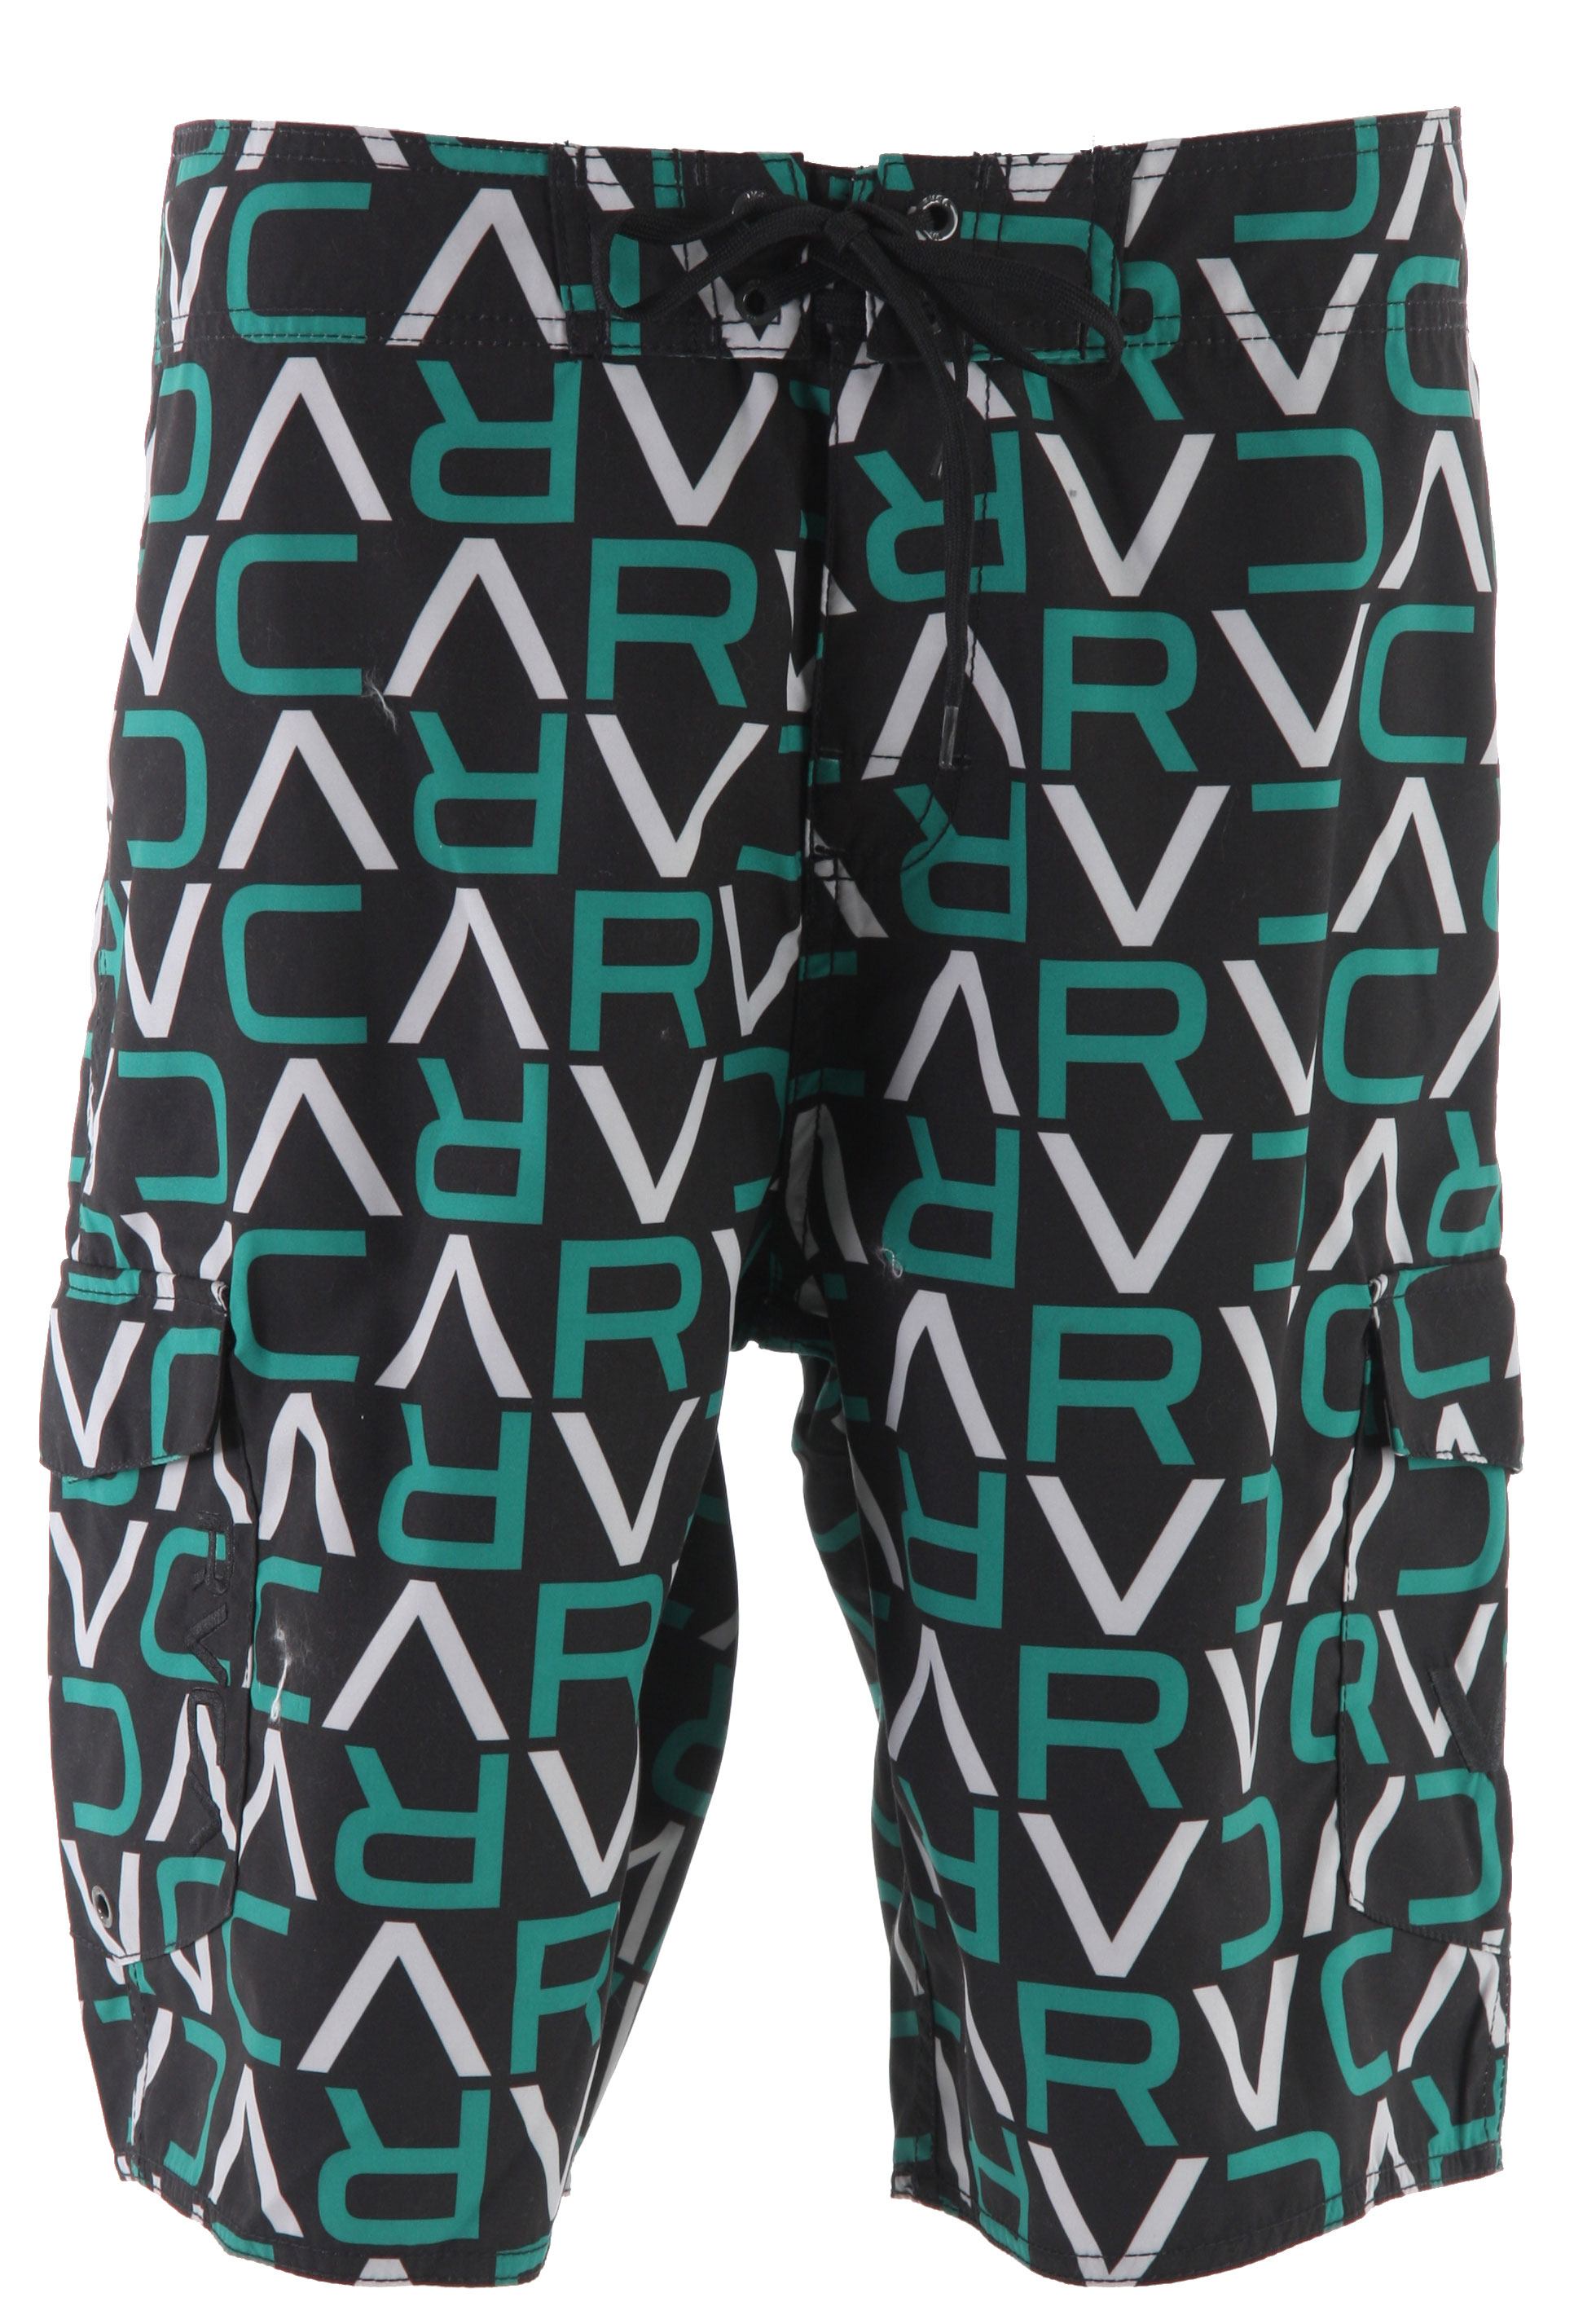 Surf Hit the beach with these ultimate boardshorts. The RVCA VA Strike Boardshorts is made with polyester microfiber, so soft to the touch. With its loose fit and soft material, this is ideal for active wear. Whether it's to the beach or the pool, rock these shorts with comfort and style. With its zipper and drawstring tie closure, be secure all day long. Be sure to include this in your summer wardrobe.Key Features of the RVCA VA Strike Boardshorts: Regular Fit- Polyester Microfiber boardshort Zipper fly and tie front waistband closure Patch pockets at right and left side seam with flap and zipper and VELCRObrand closure Screen Print all over body RVCA embroidery at wearer's left pocket VA embroidery at wearer's right pocket - $35.95